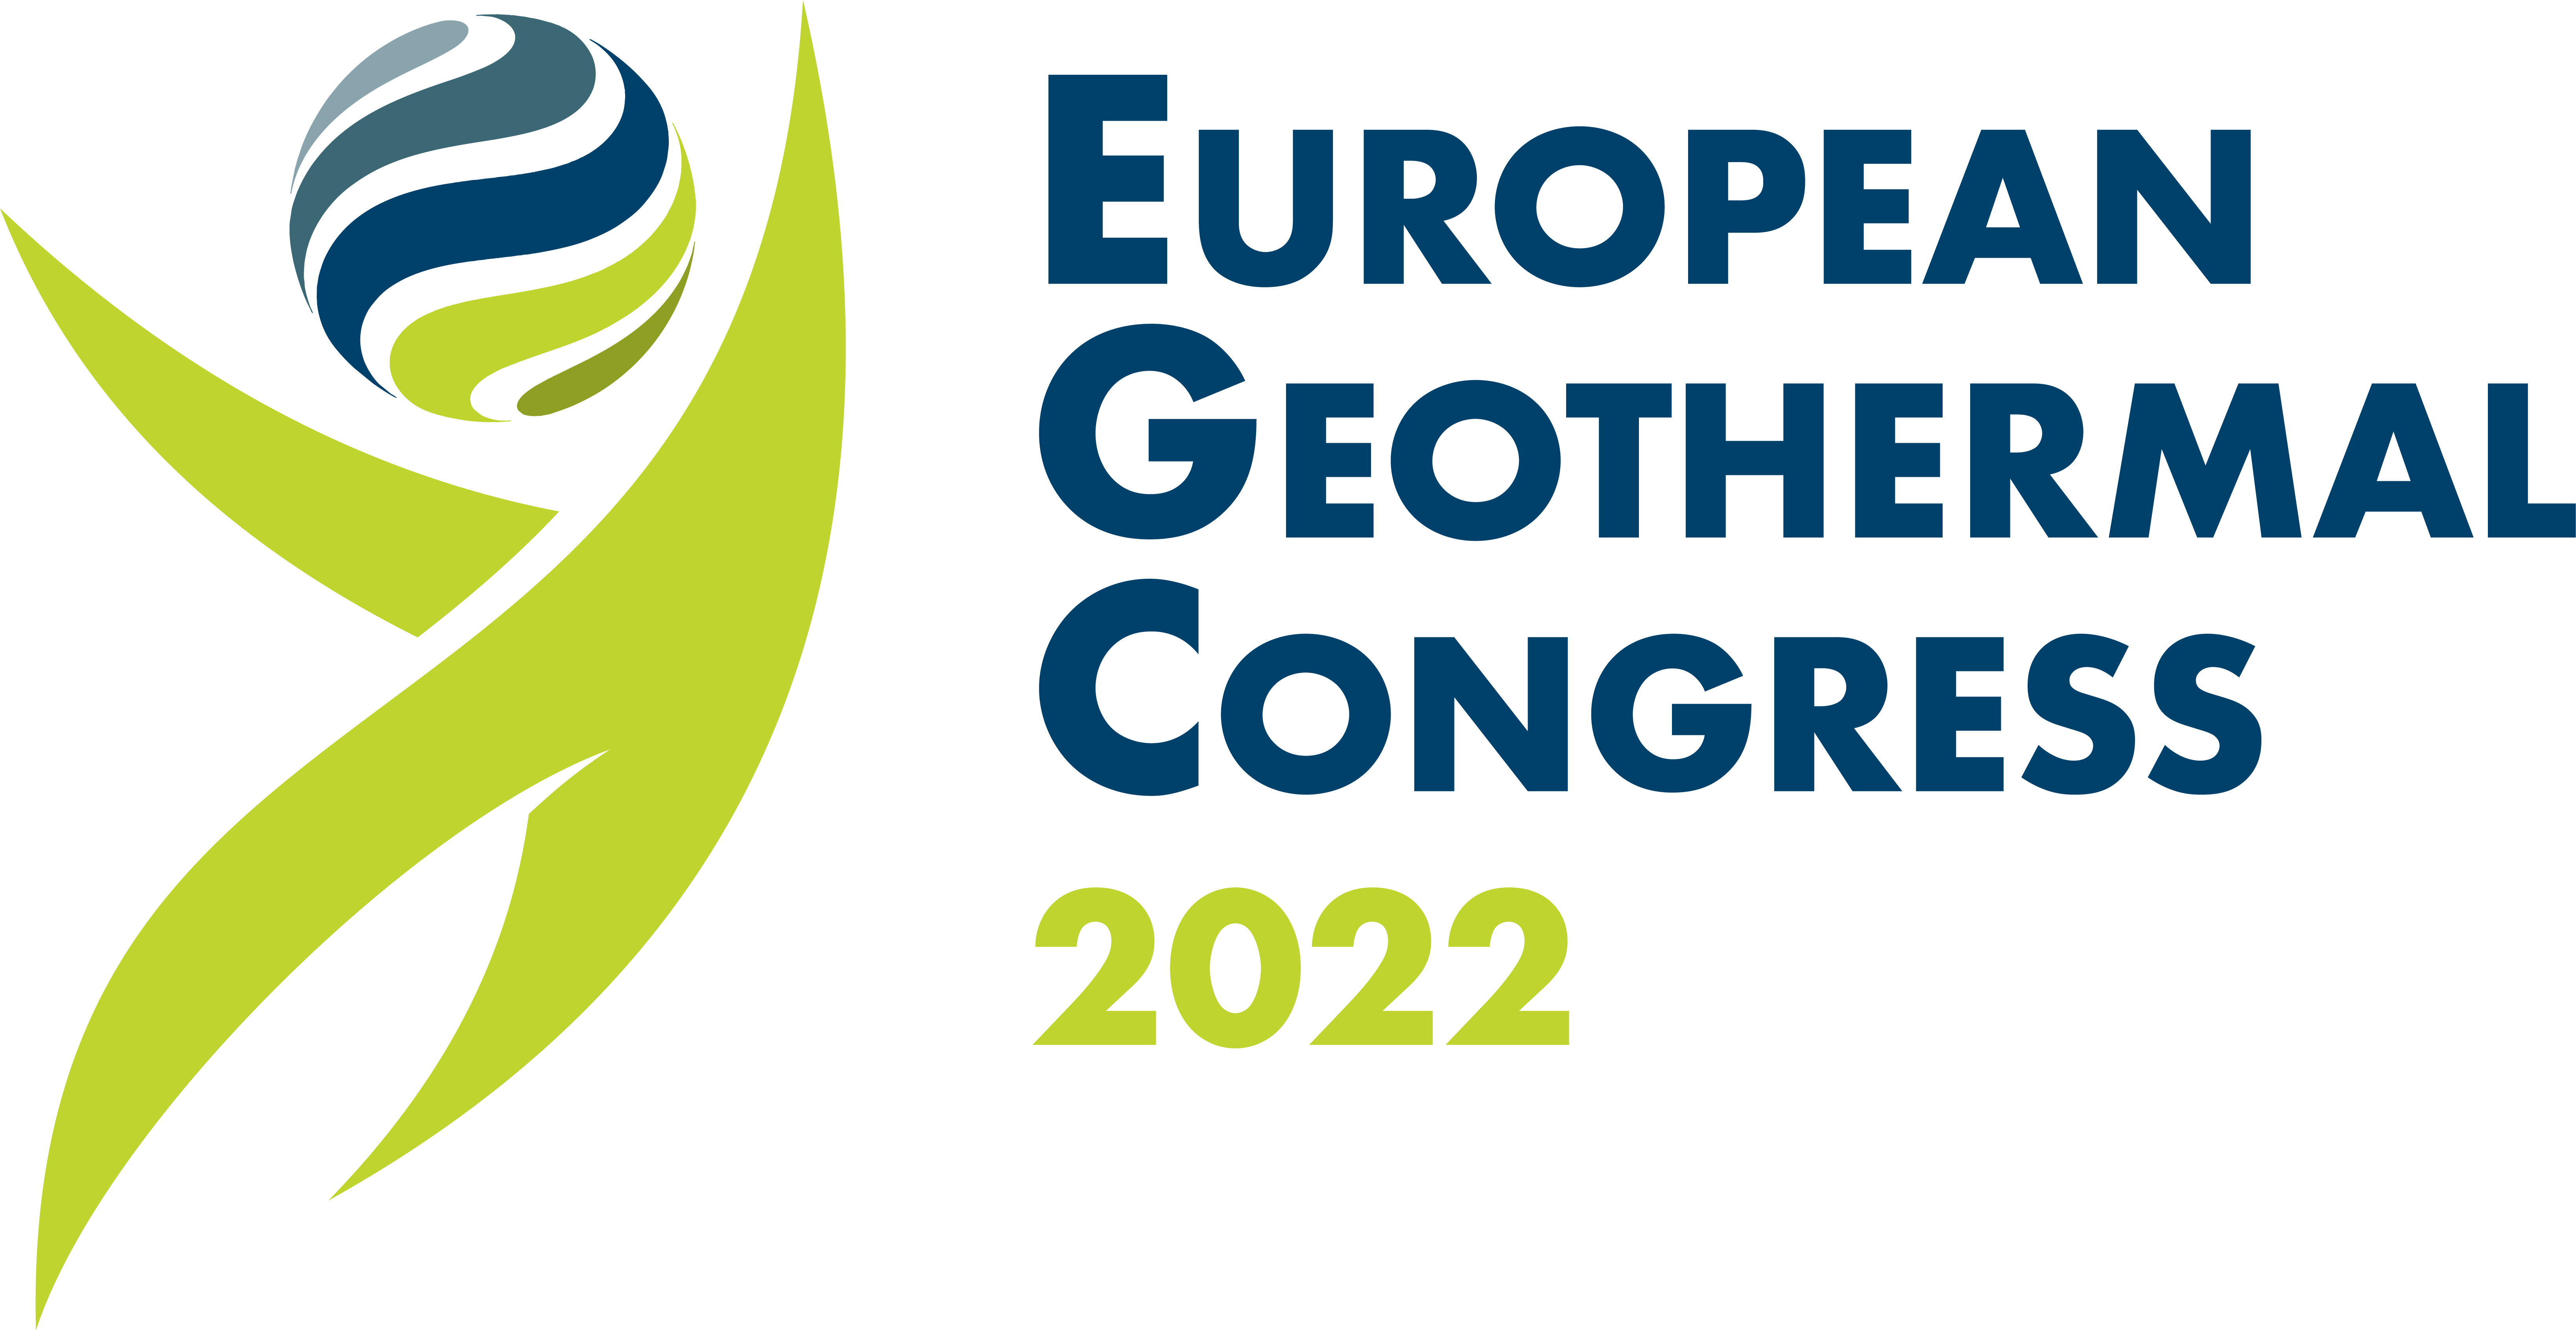 Event European Geothermal Congress 2022